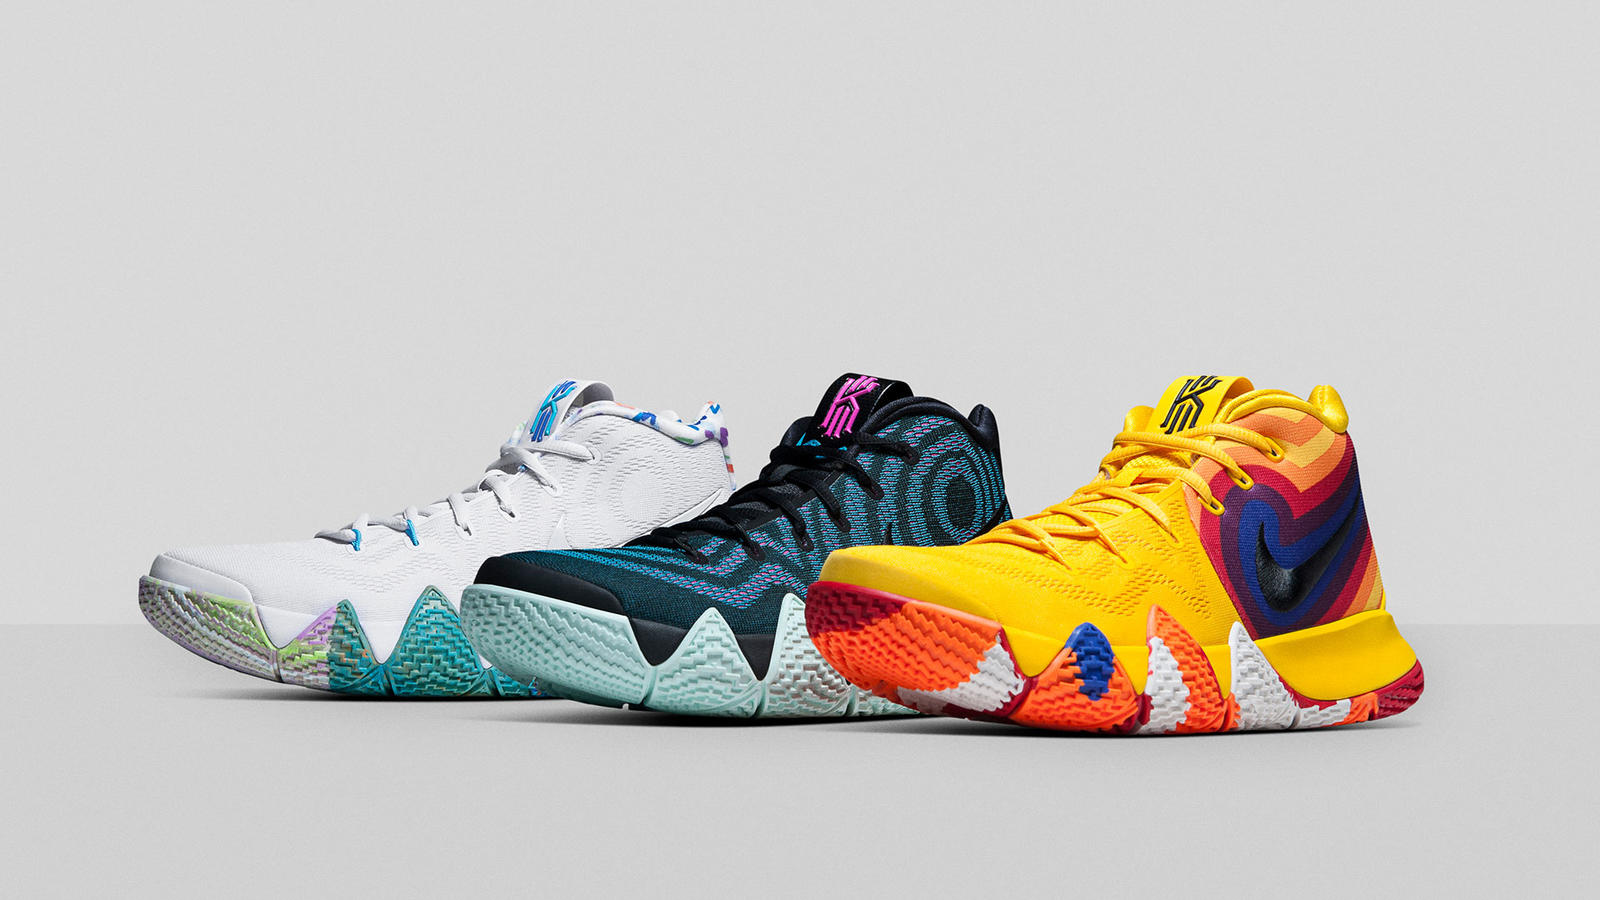 quality design 45b3b 32e17 KYRIE 4 Decades Pack - Nike News